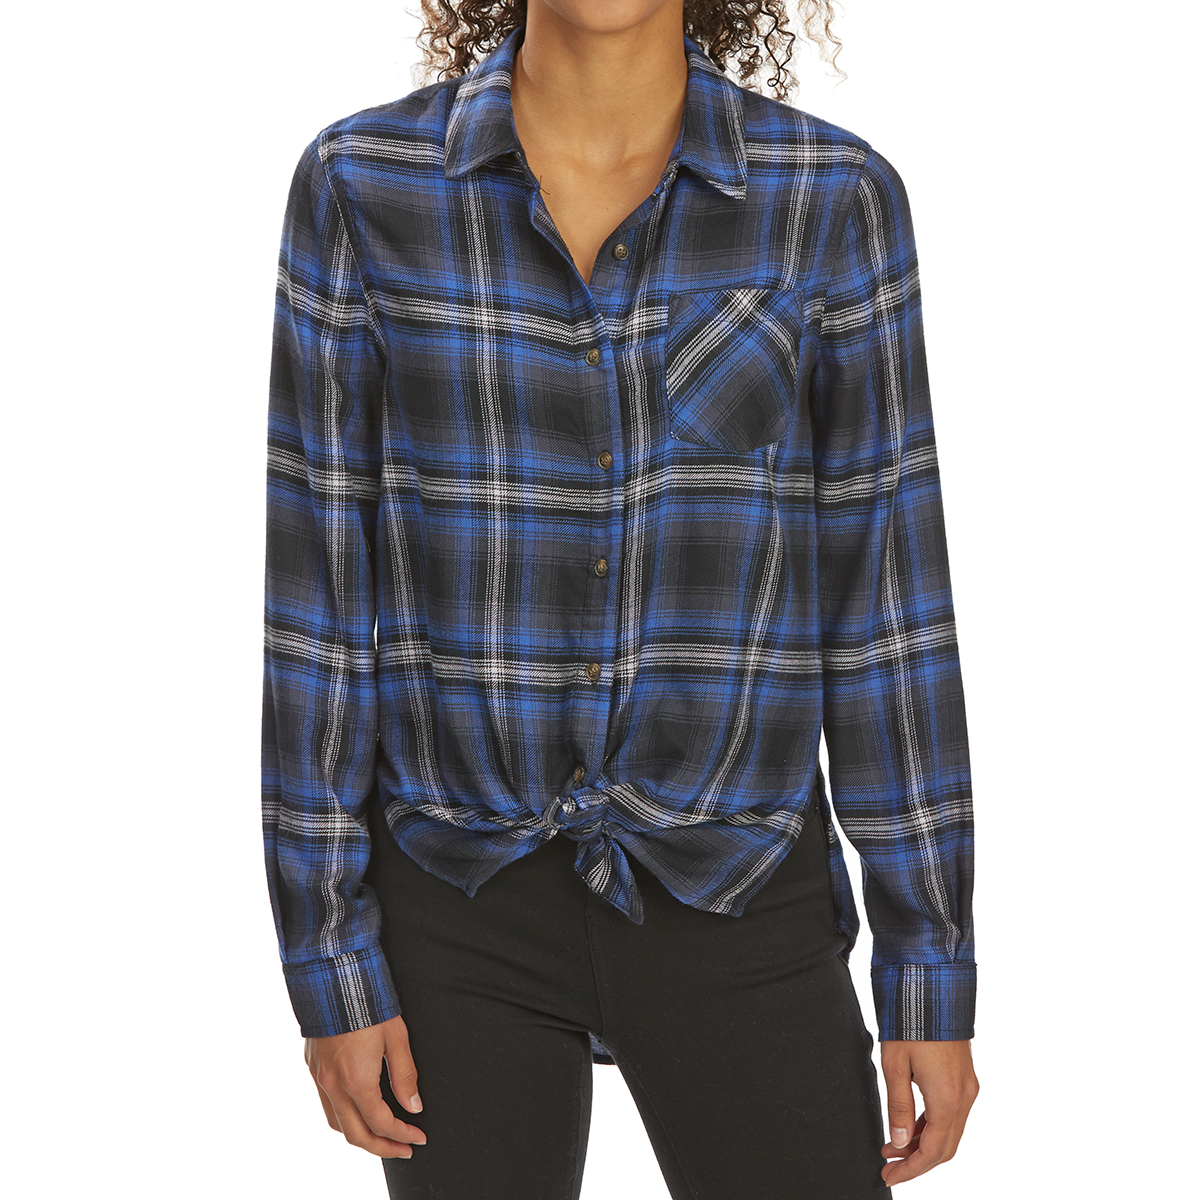 Pink Rose Juniors' Tie-Front Brushed Plaid Long-Sleeve Flannel Shirt - Blue, M